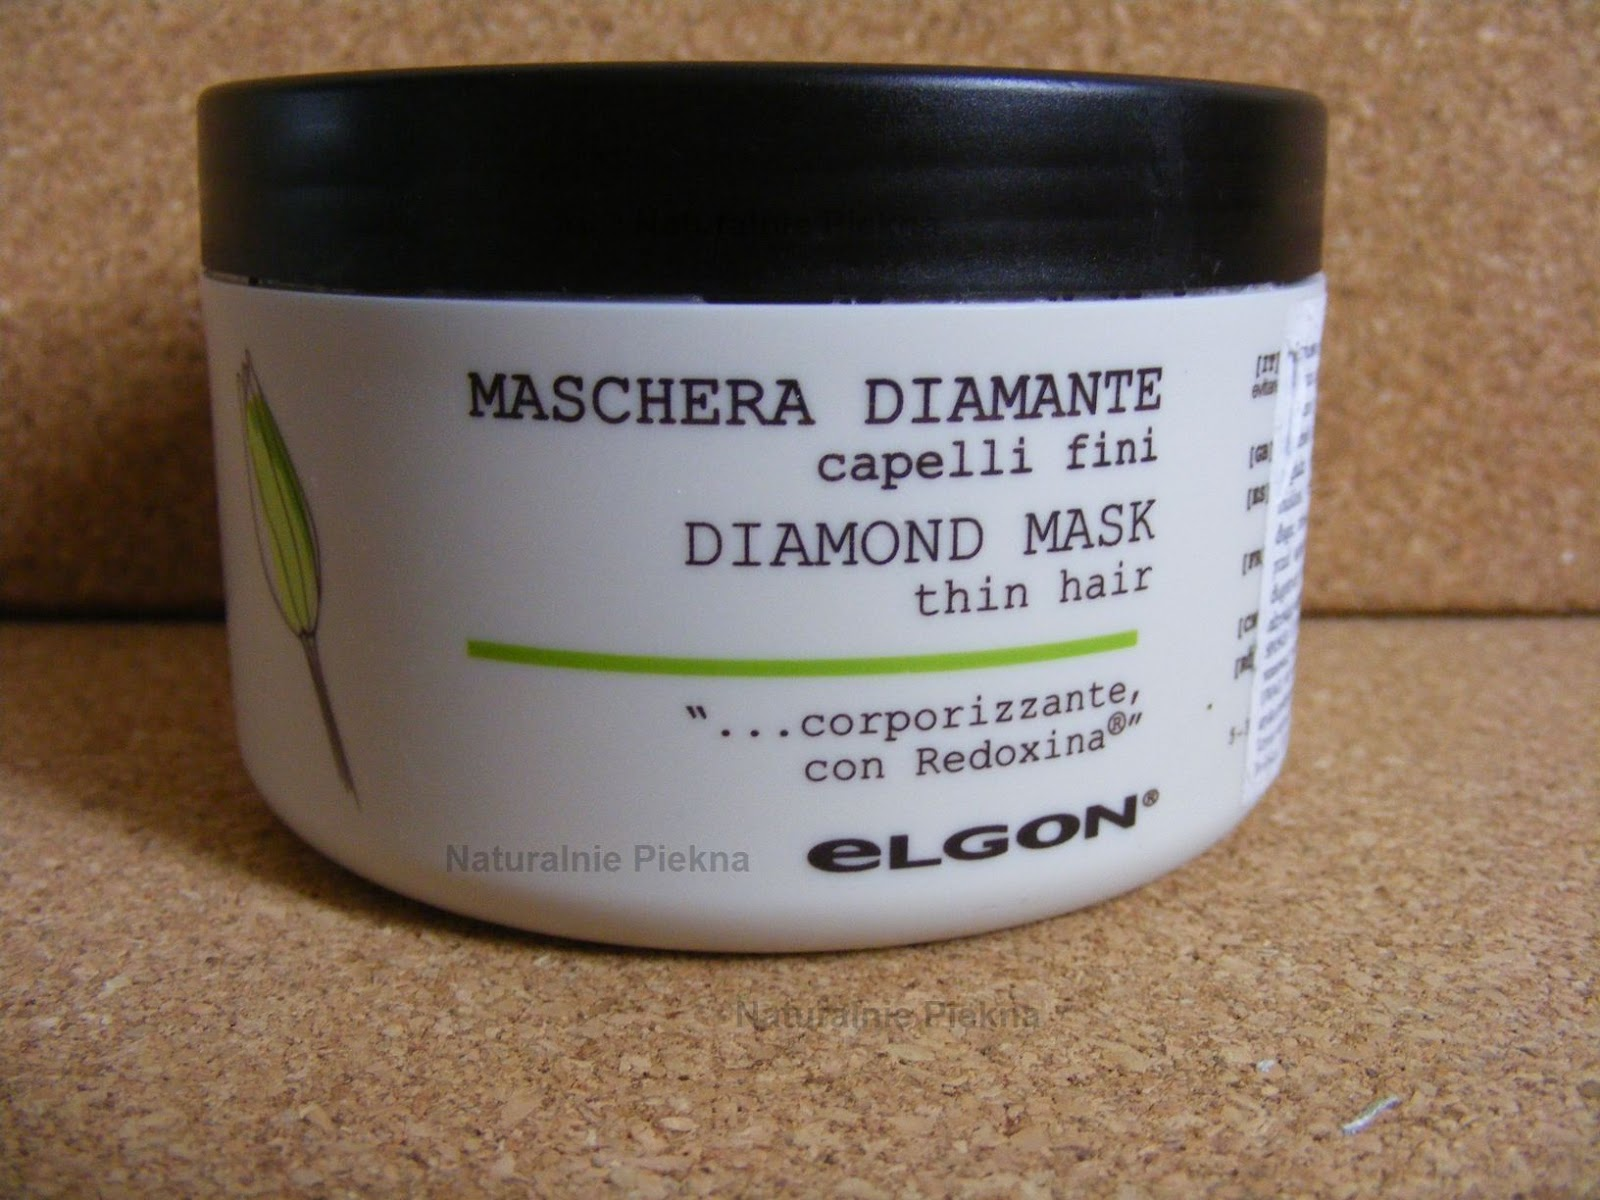 Elgon - Diamond Mask thin hair Primaria